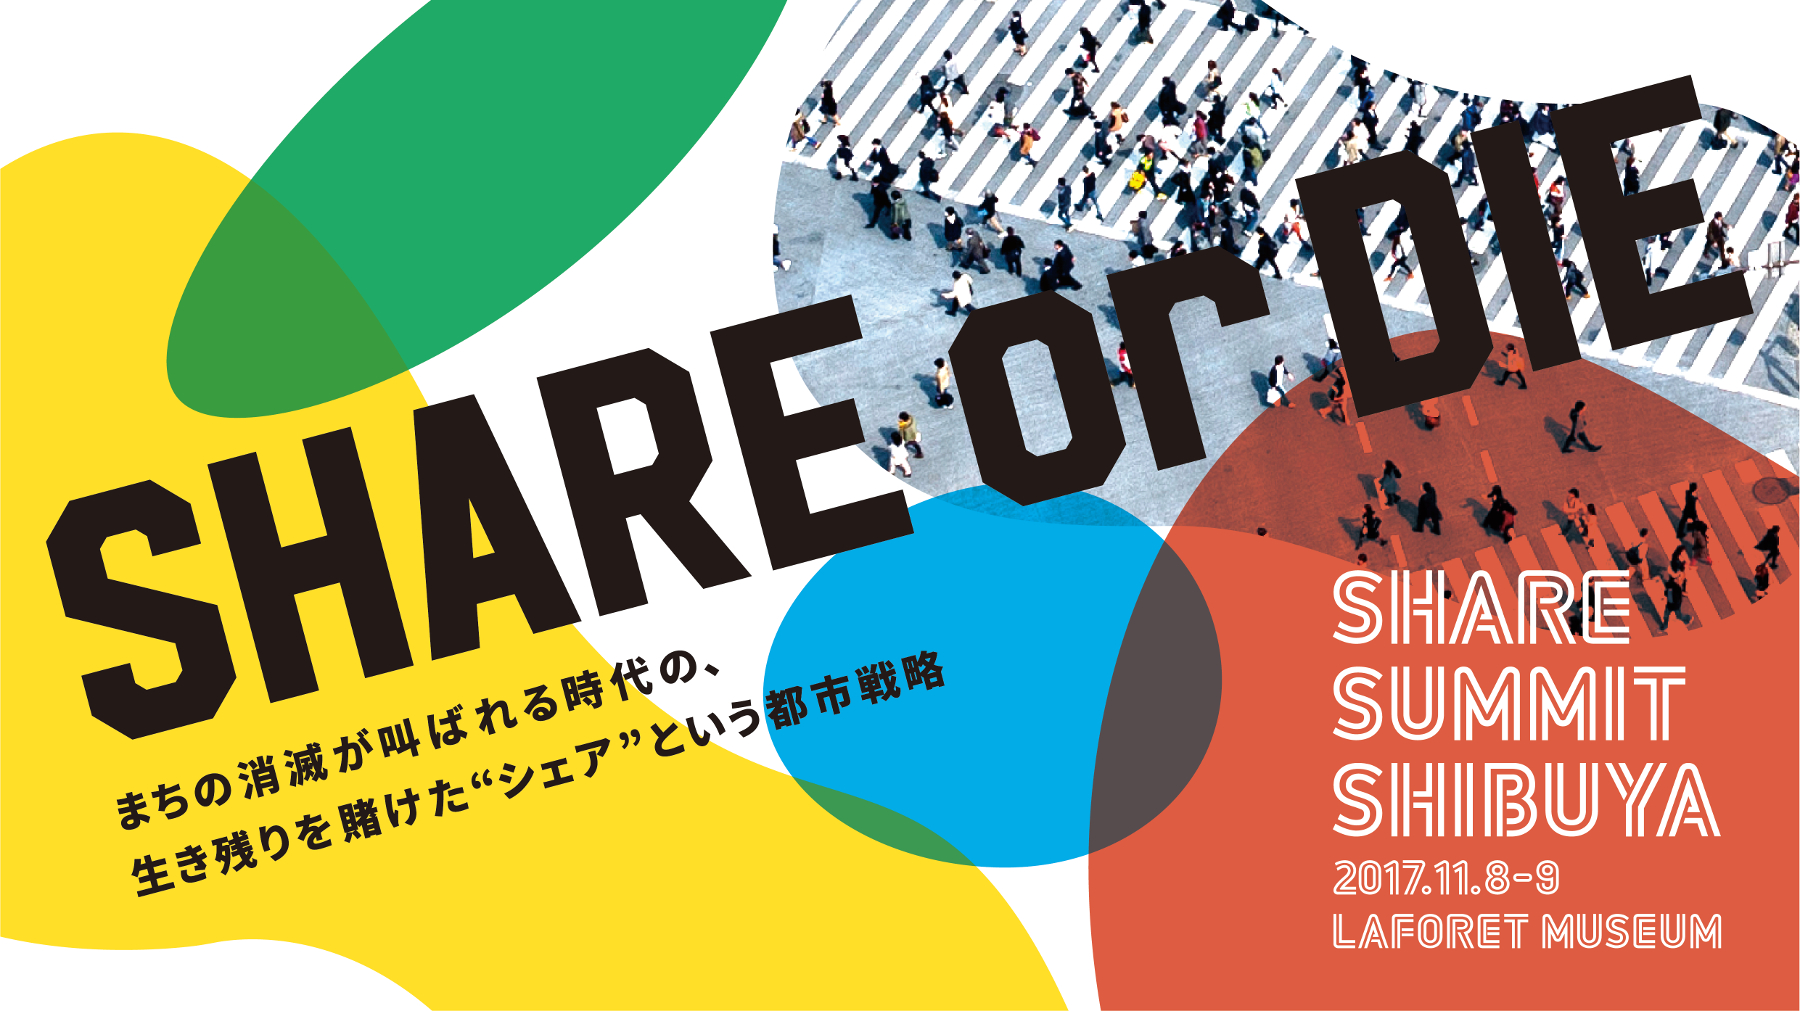 Share Summit 2017